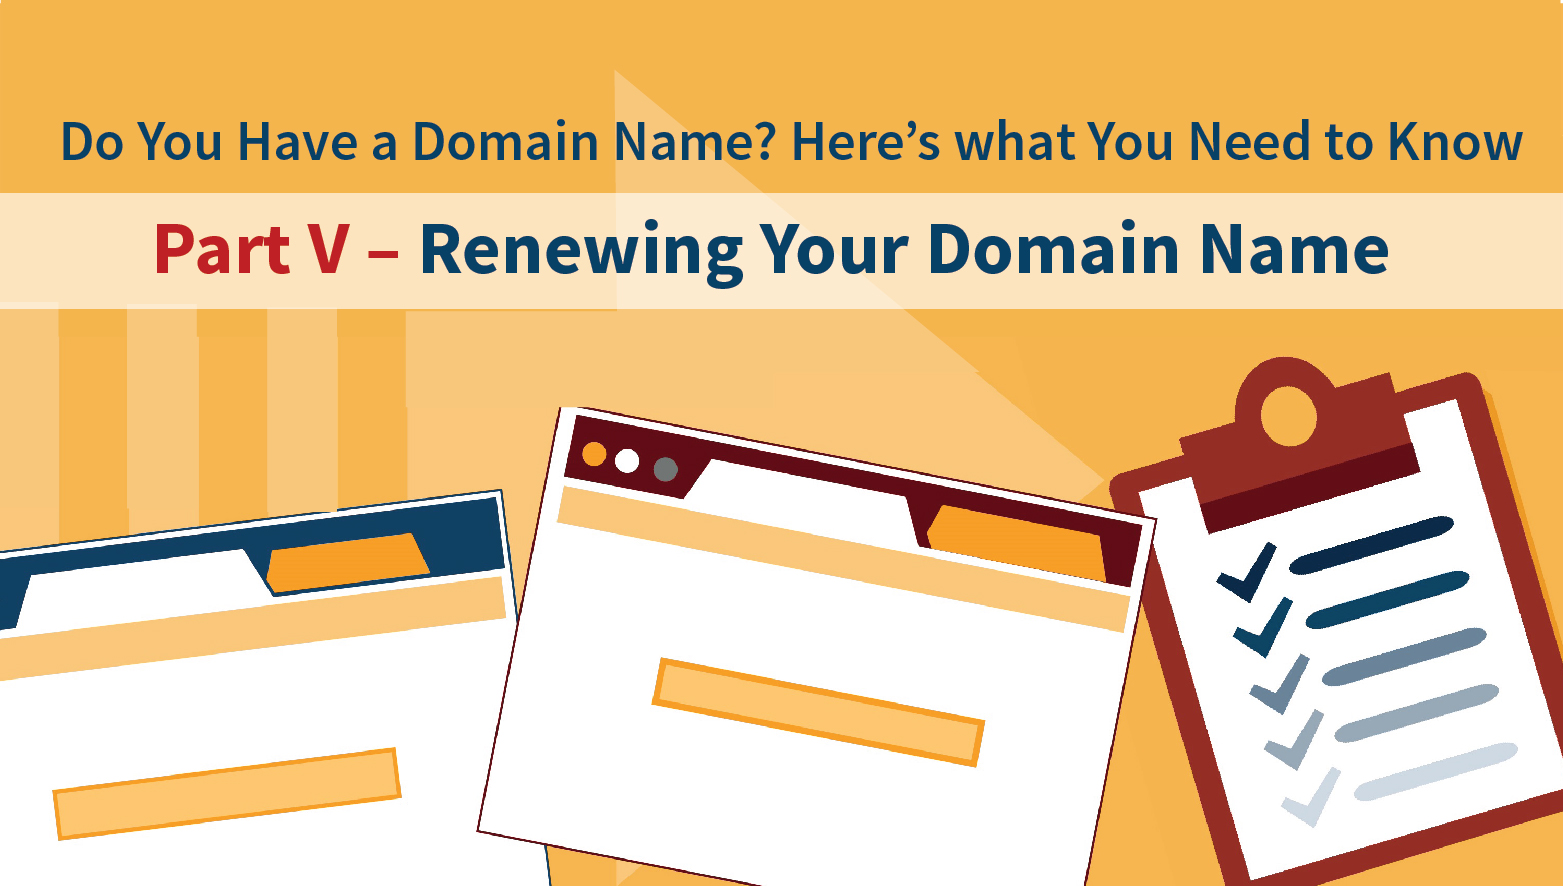 Renewing domain 1563x866 name 07dec18 en